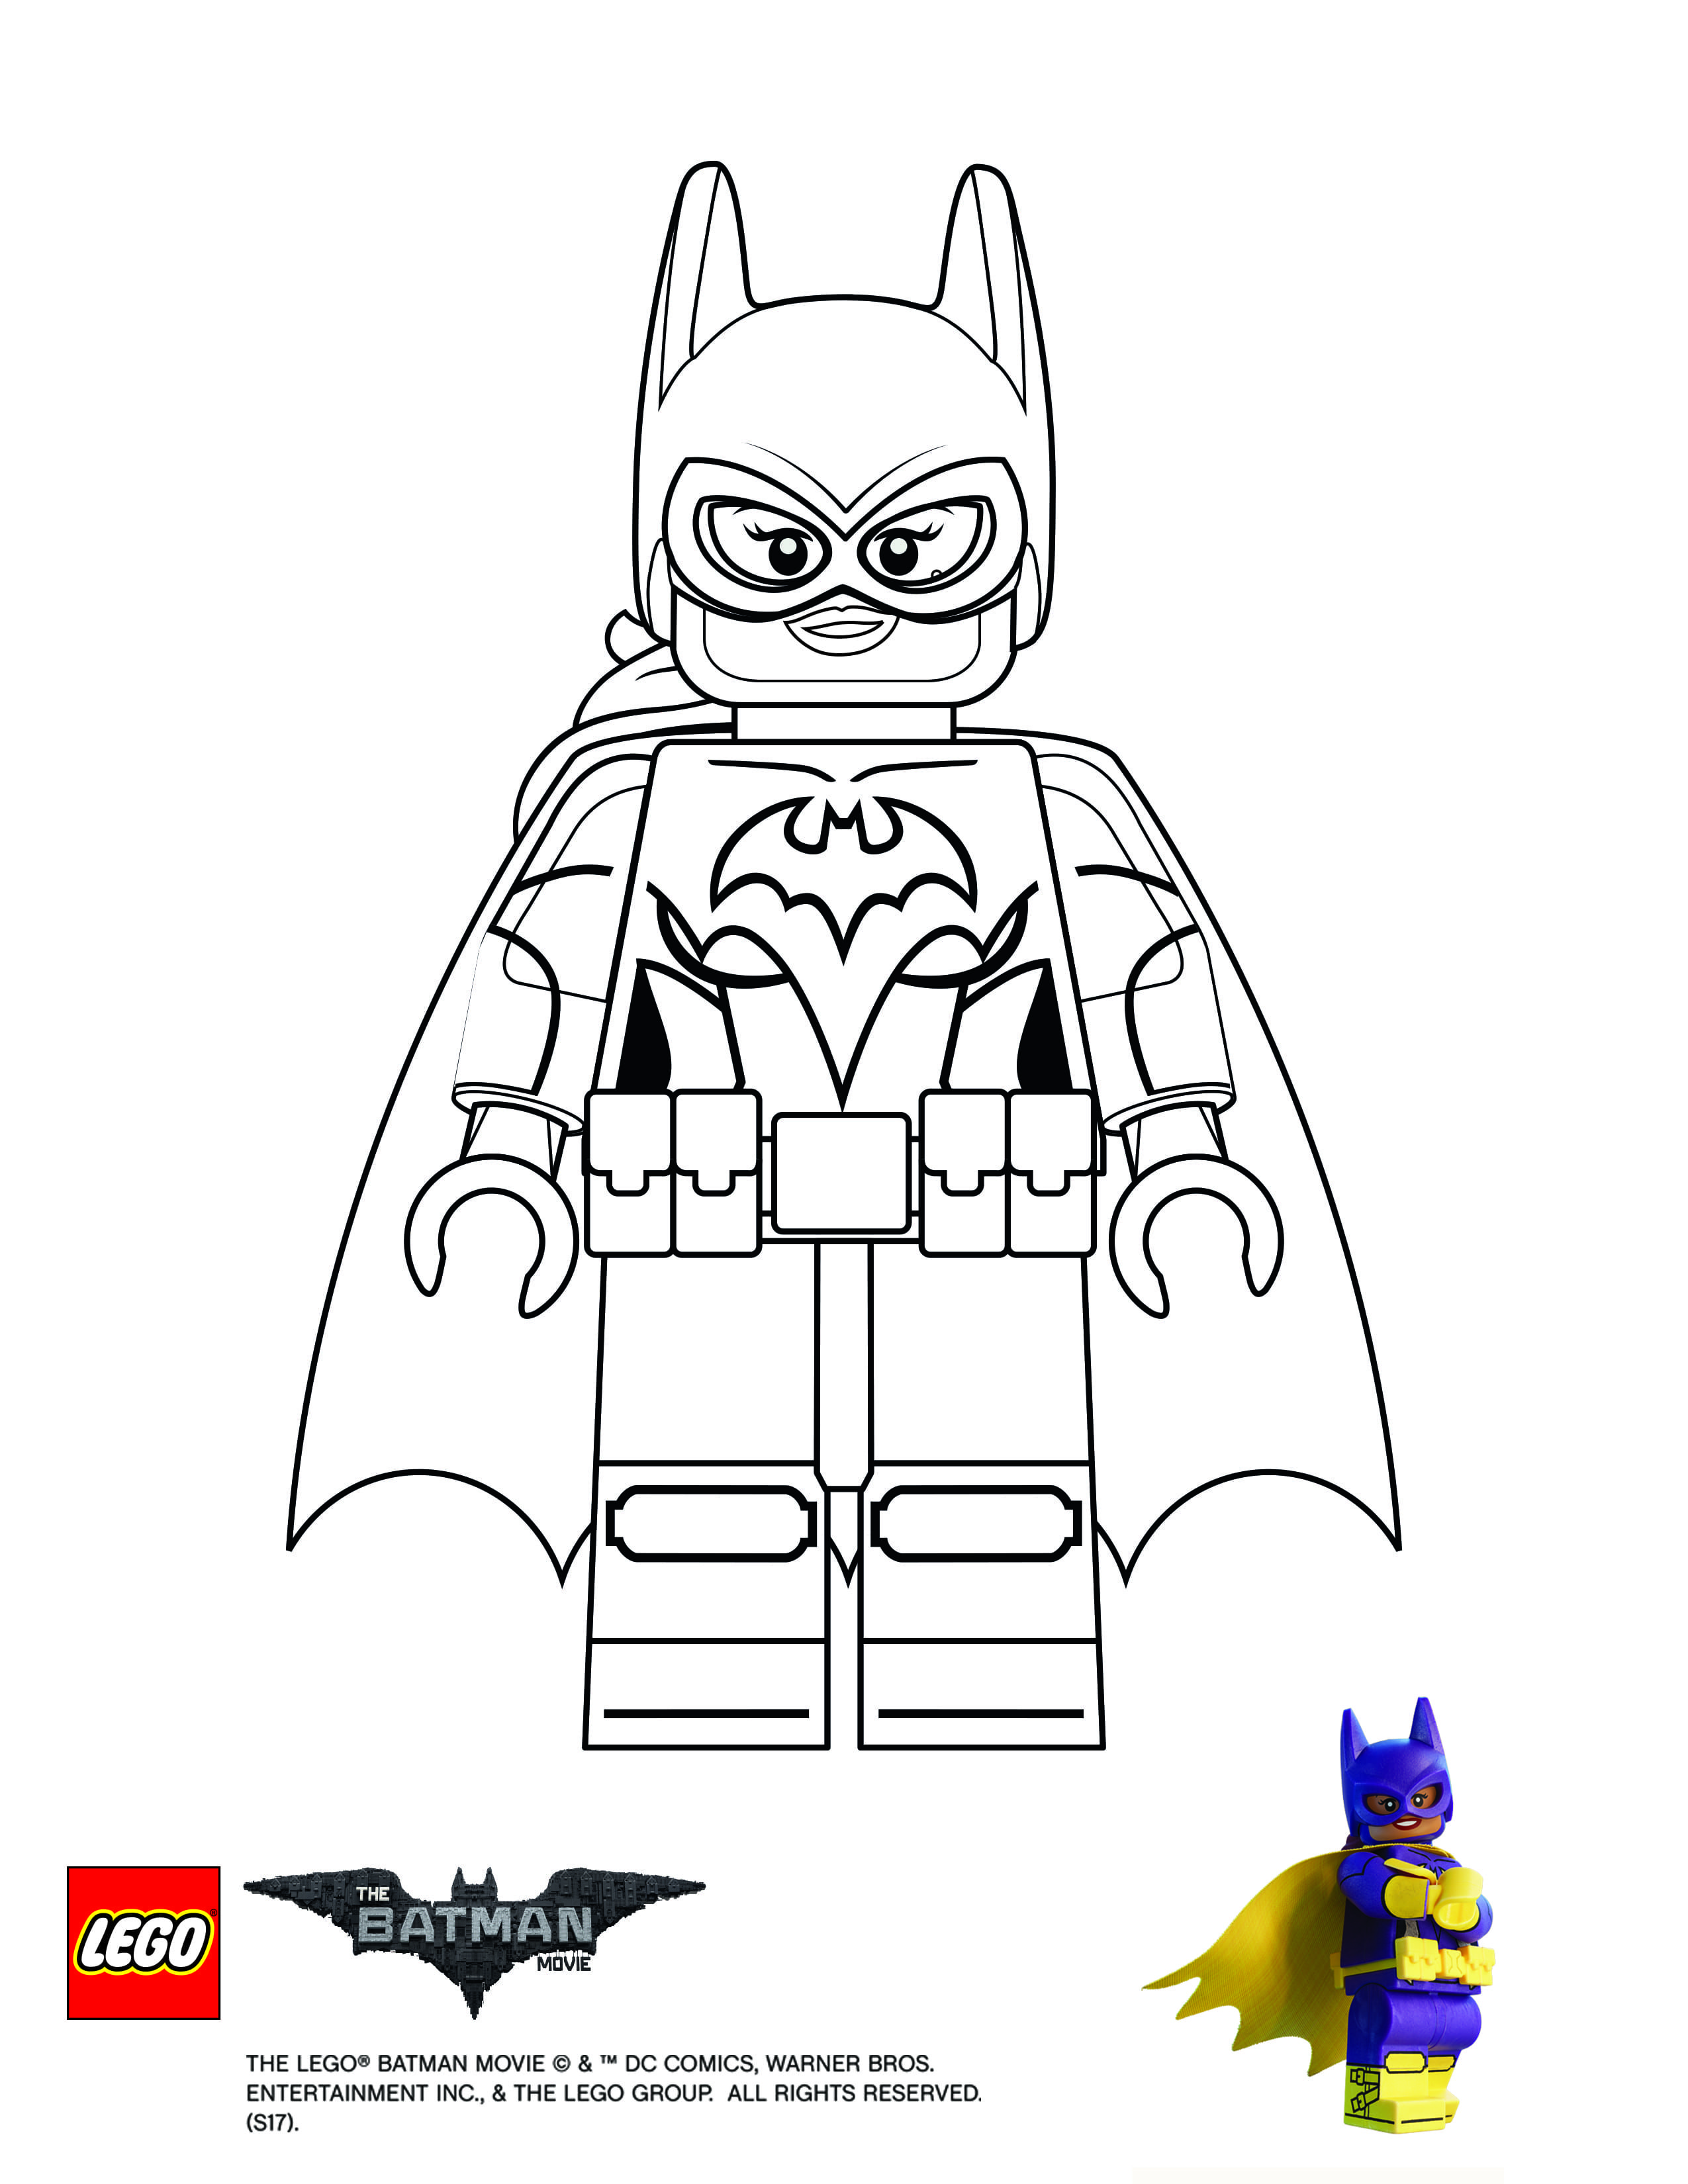 Coloring Page Batgirl Lego Coloring Pages Batman Coloring Pages Lego Batman Birthday